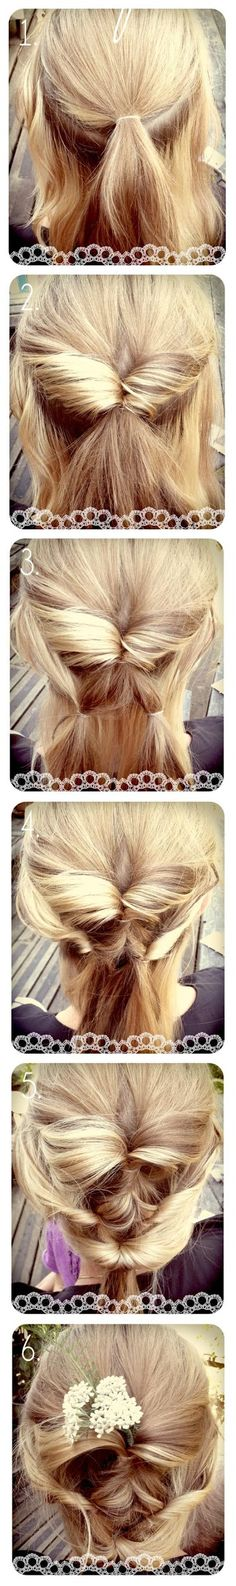 Make a Diy Wedding Hair | hairstyles tutorial